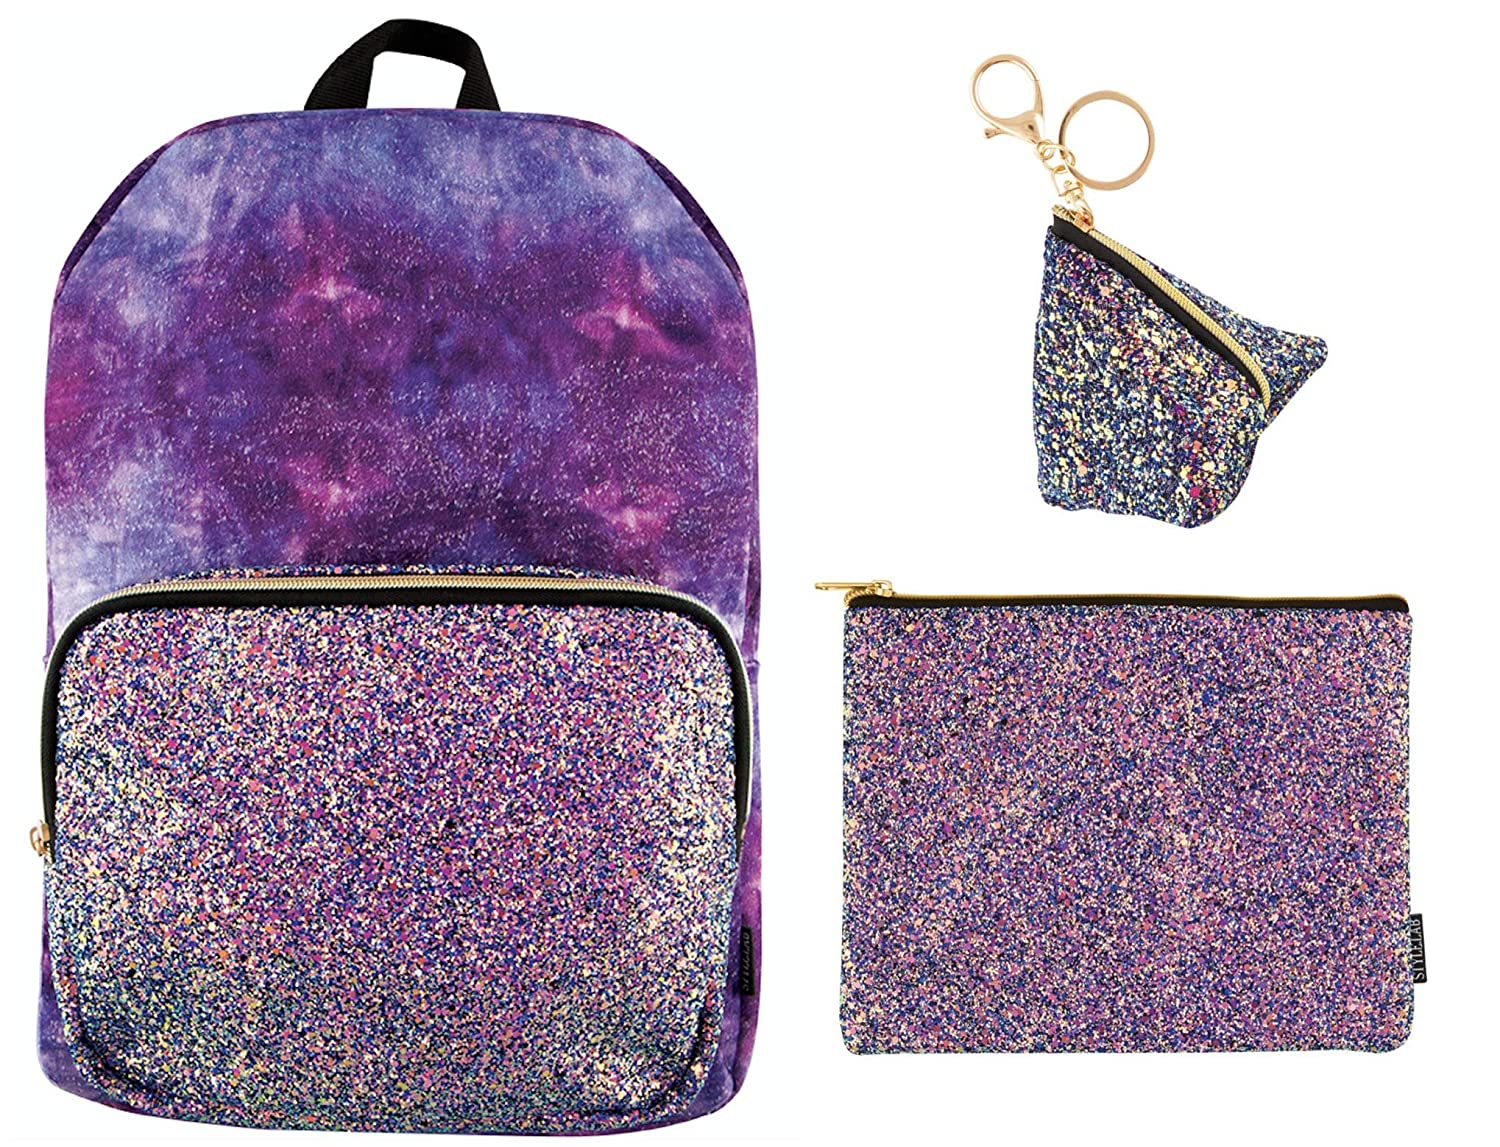 Bag Charm! Matching Chunky Glitter Pouch Style.Lab Crushed Velvet with Chunky Glitter 16 Backpack